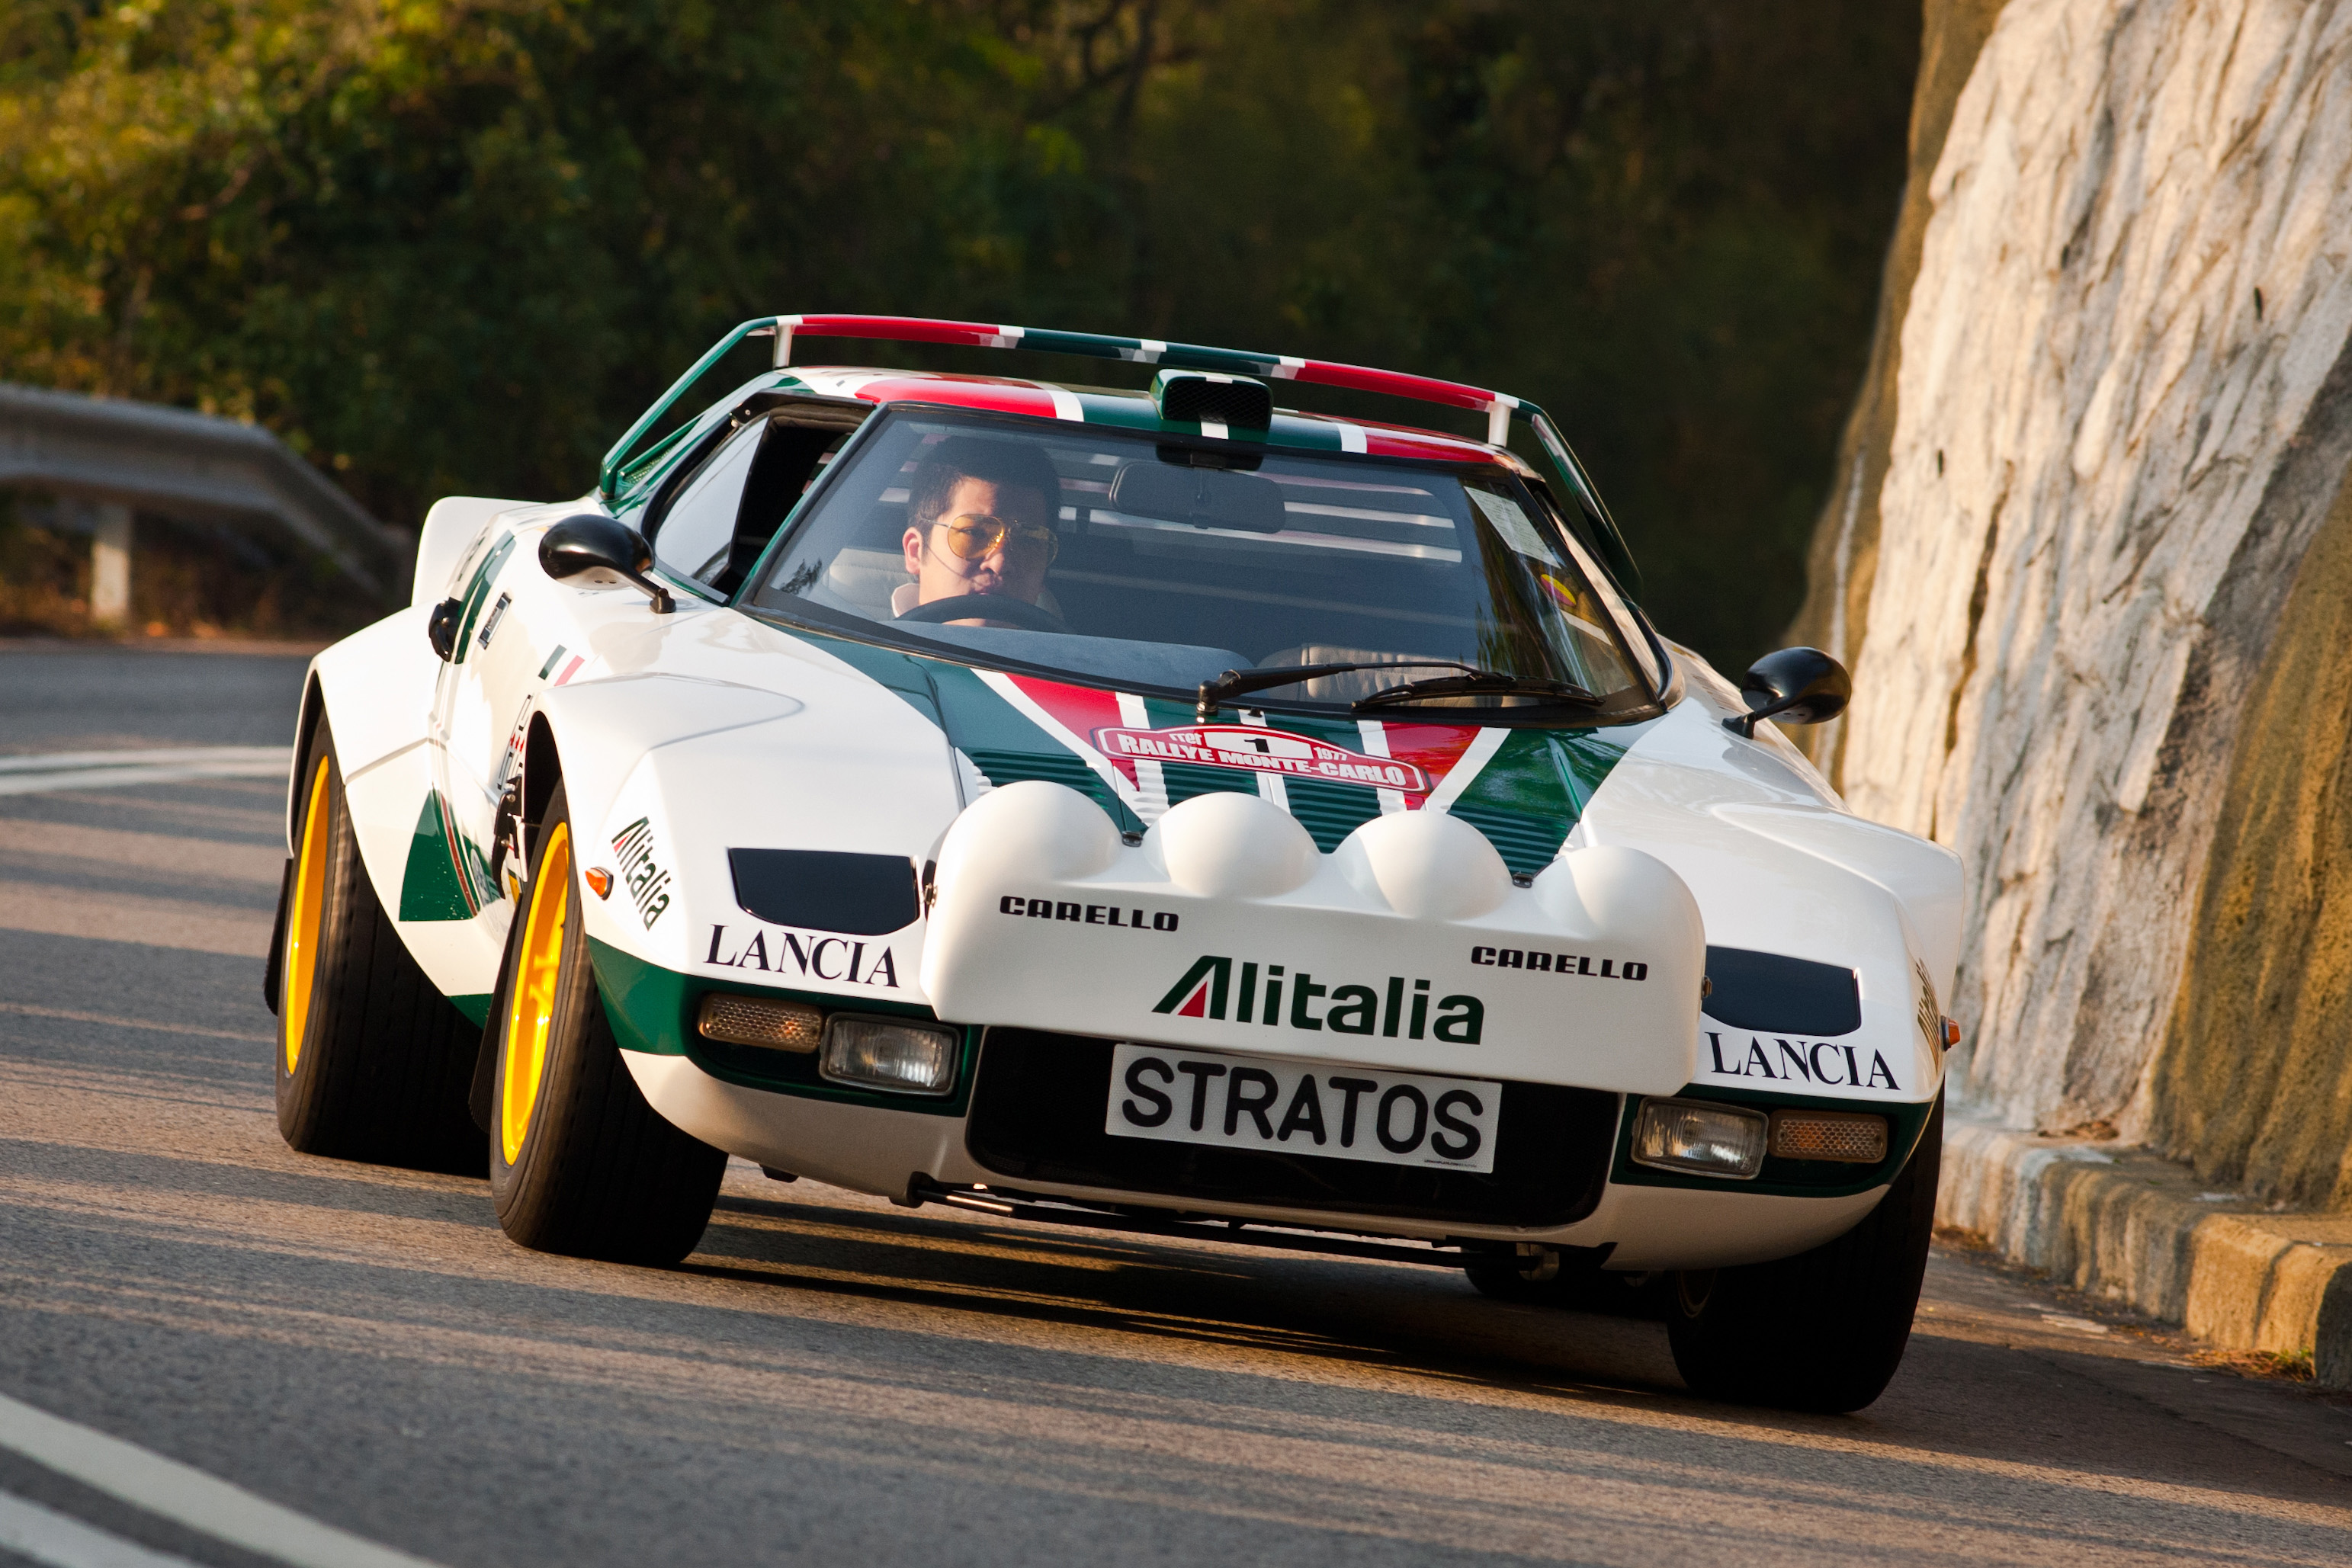 Classic Lancia Car Wallpapers and History - Beautiful Old Lancia ...